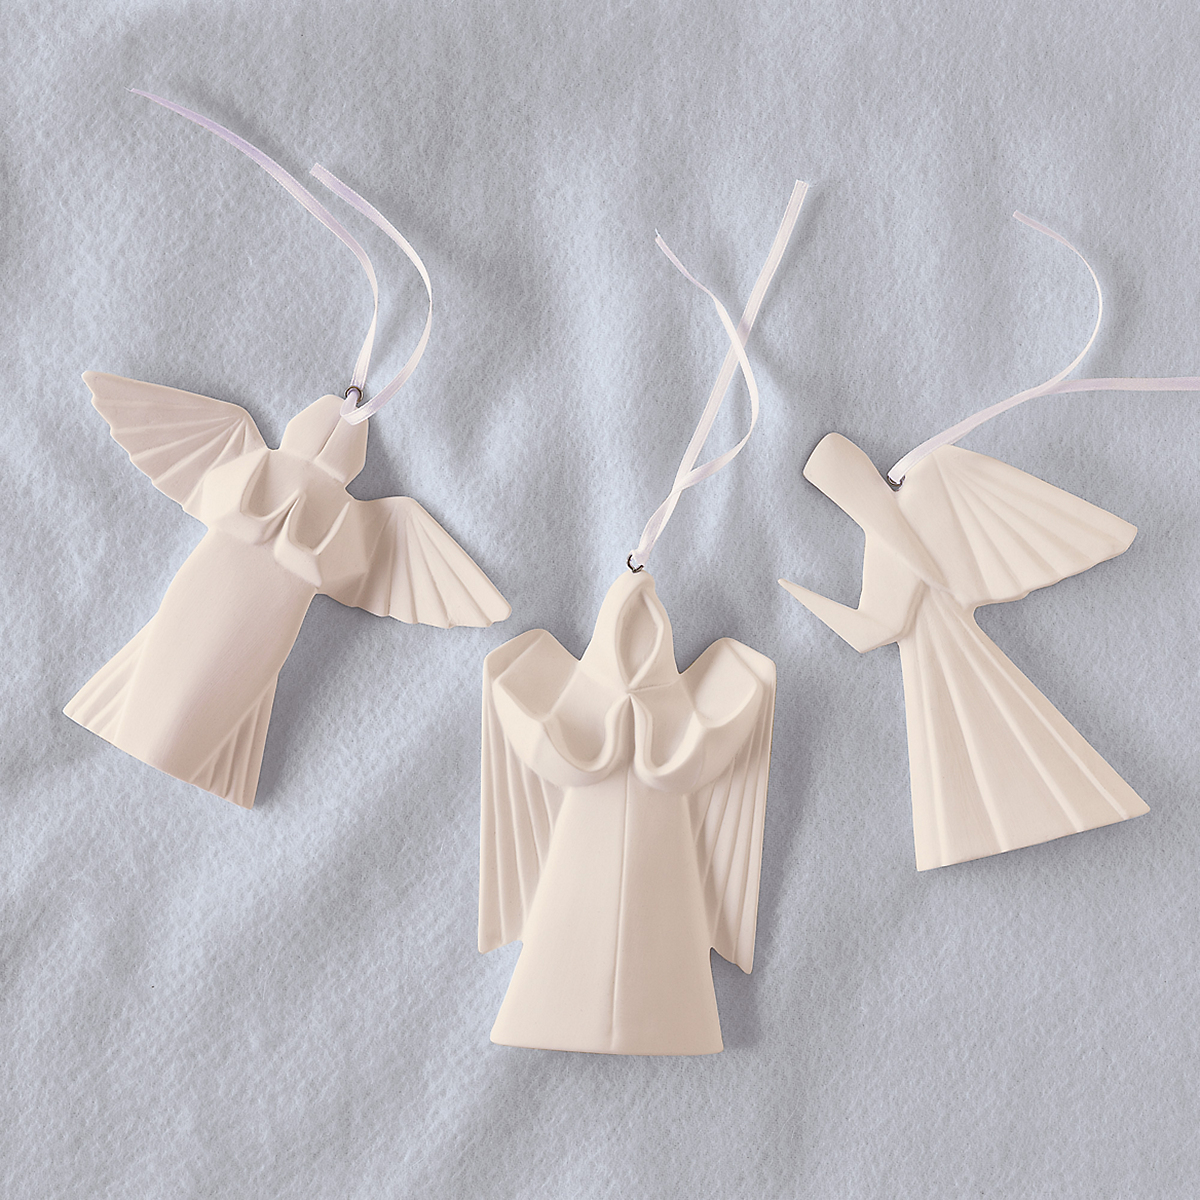 Porcelain Origami Angels Ornament Set Images - Frompo - photo#9